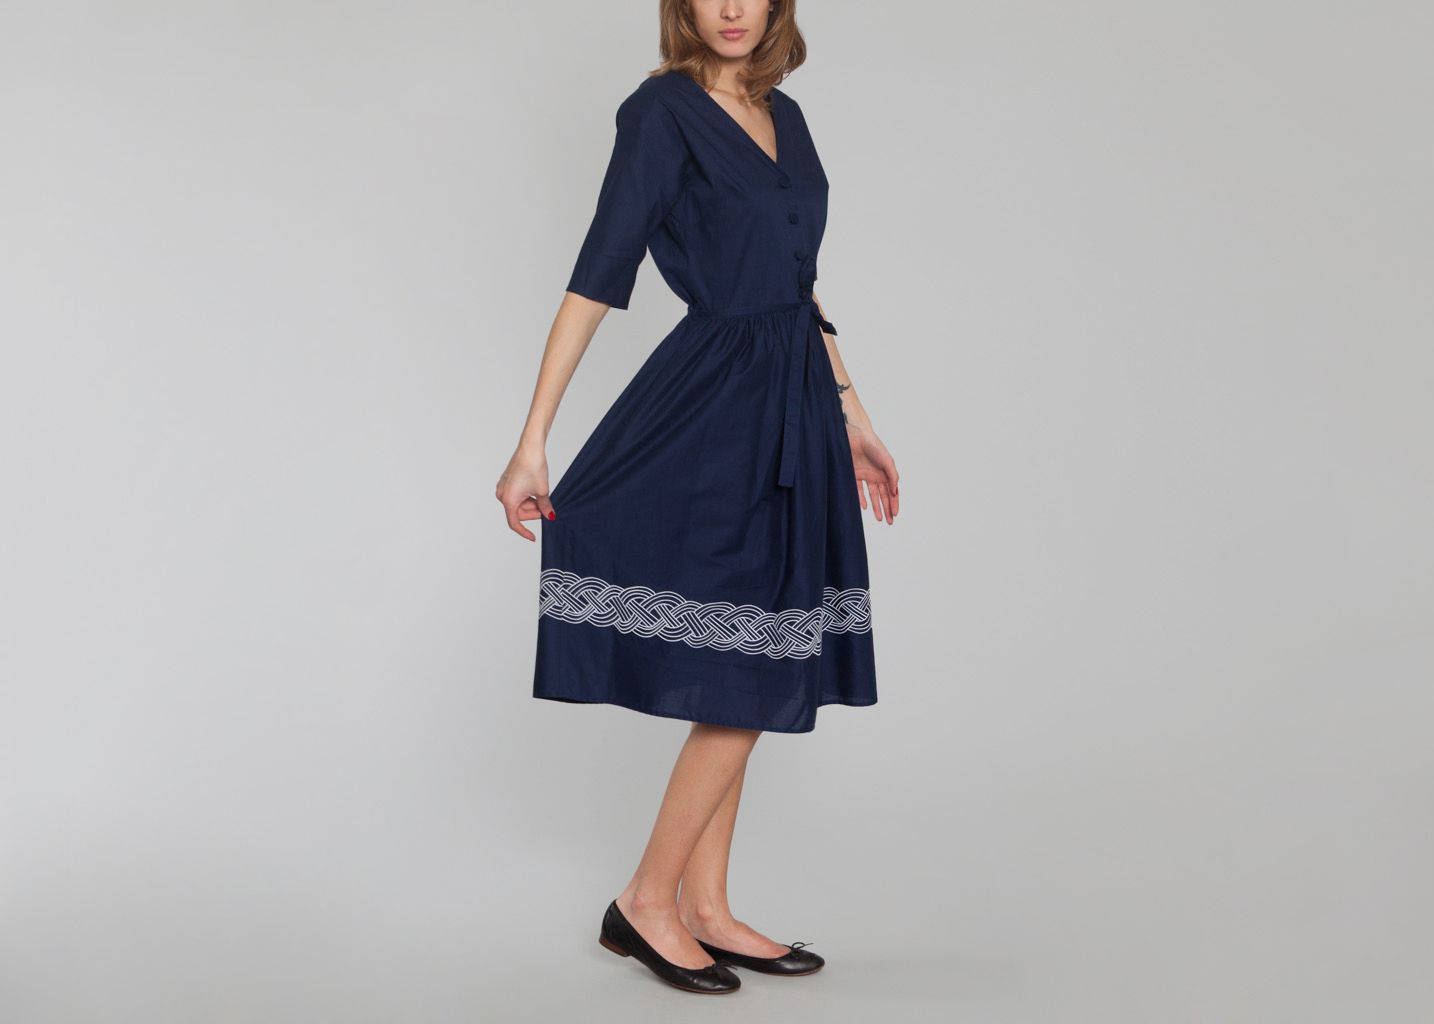 Agnes b robe cocktail